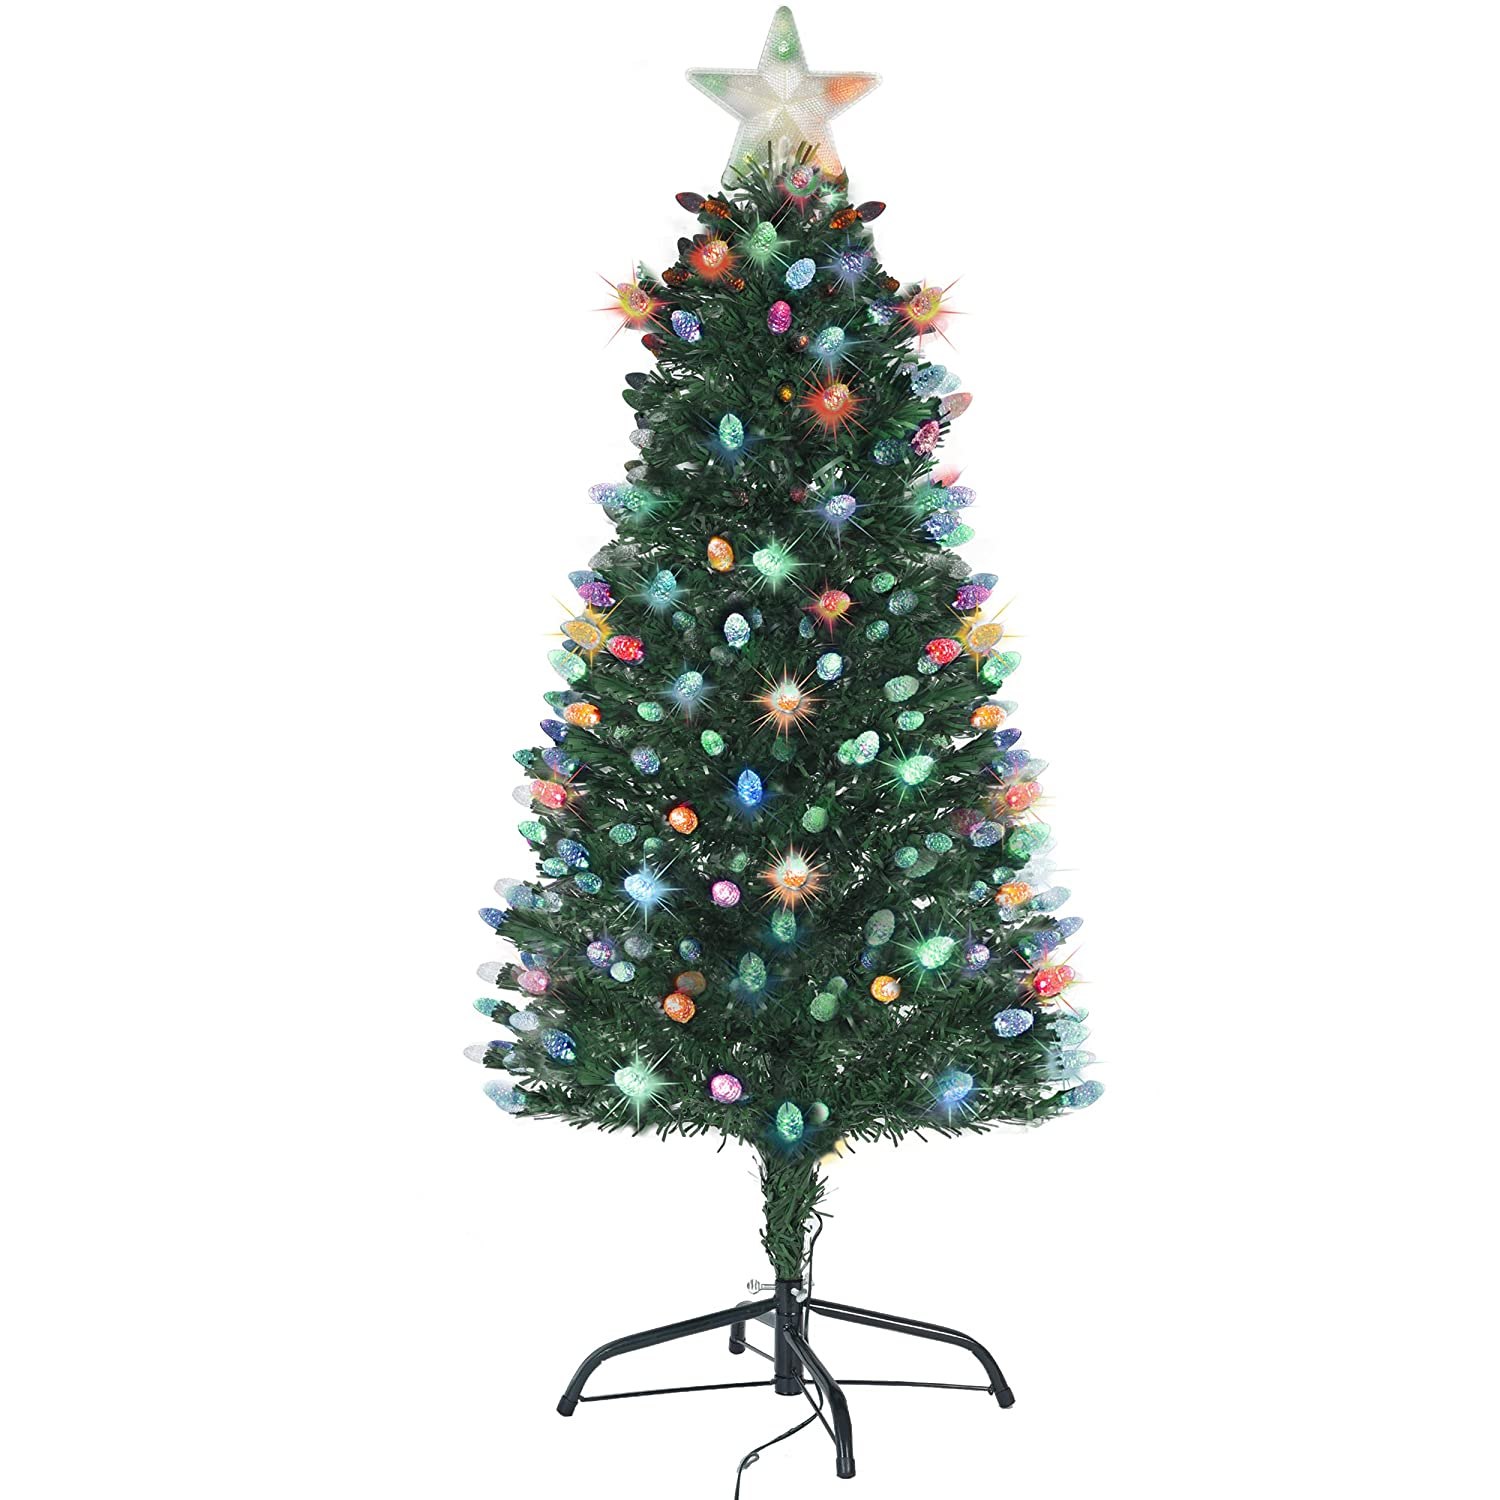 promo code f766a 6eed5 Holiday Essence Pre Lit Christmas Tree 4 Ft, Artificial Xmas Tree with  Prelit LED Multicolor Lights, Star Tree Topper, Changing Acorn Shaped LEDs,  120 ...